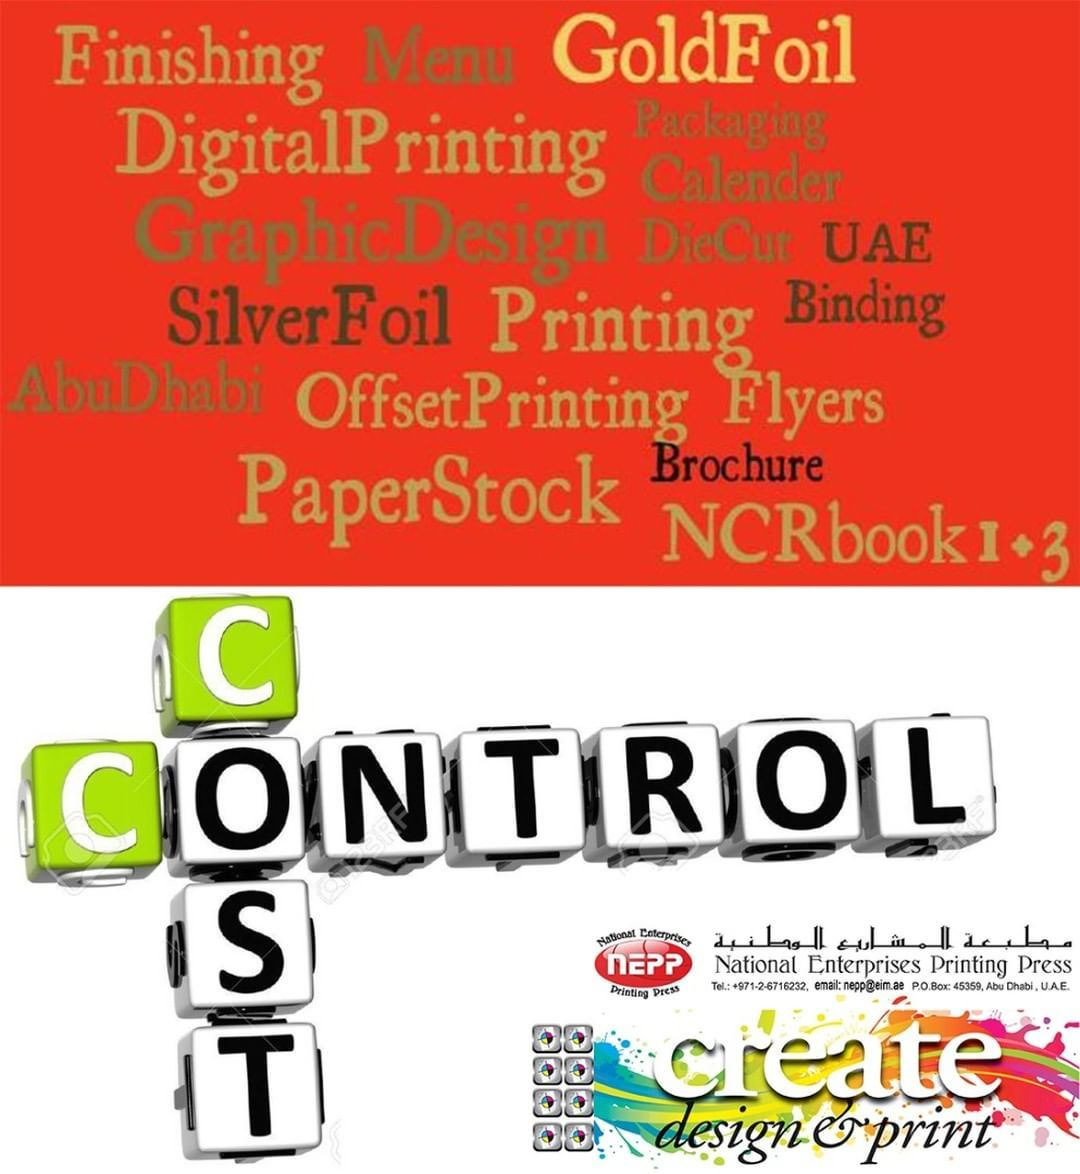 Nepp Abudhabi We Are The Print And Graphic Design Experts In Abu